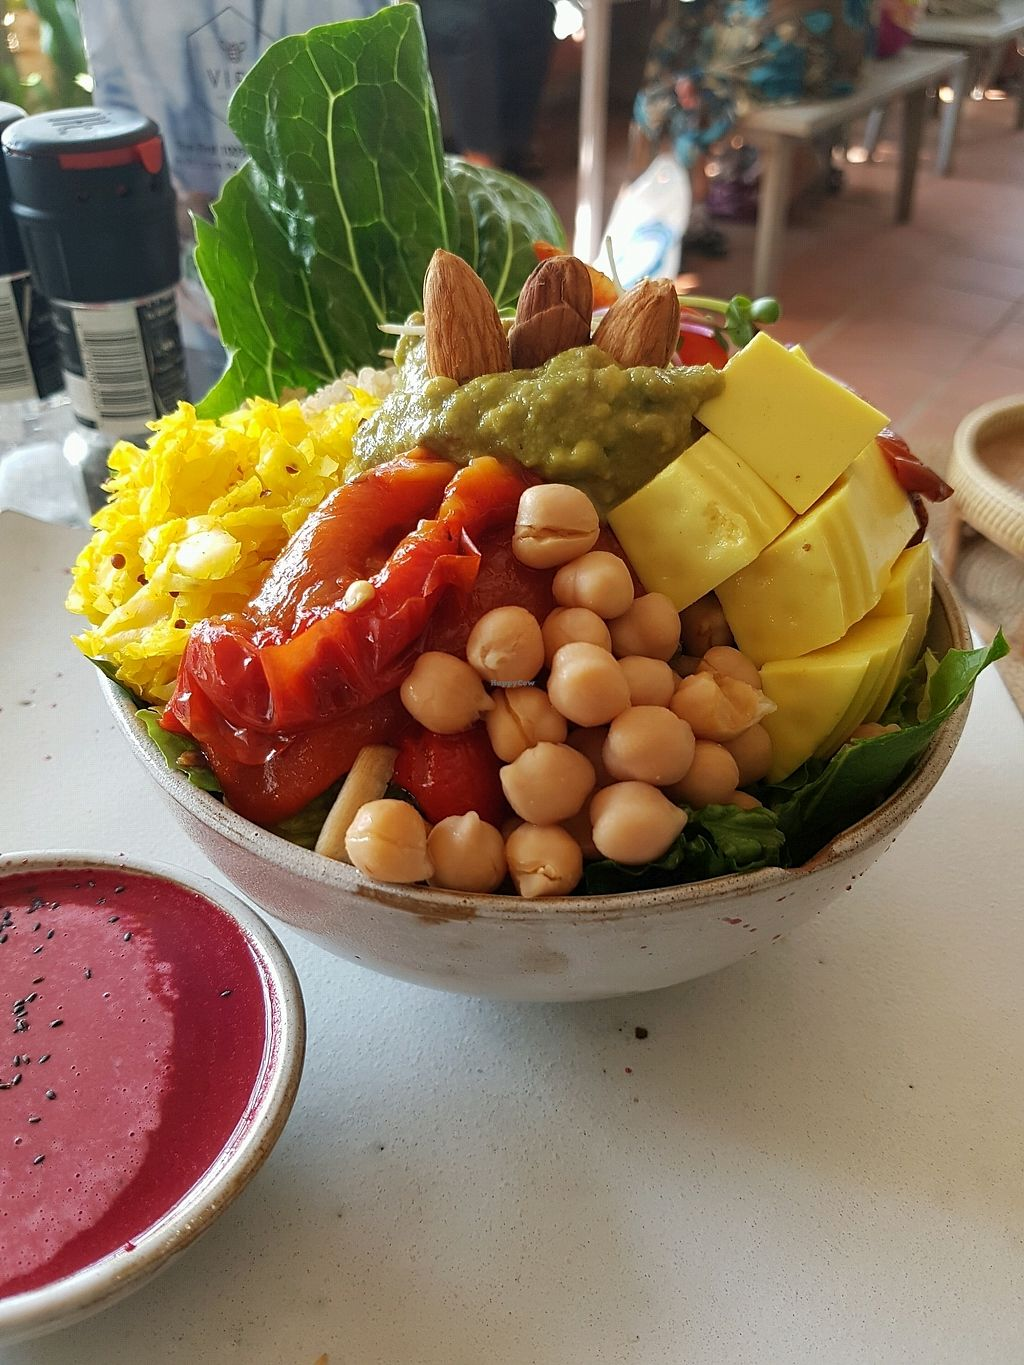 "Photo of Vibe Cafe  by <a href=""/members/profile/vegatleticas"">vegatleticas</a> <br/>delicious vegan bowl <br/> February 23, 2018  - <a href='/contact/abuse/image/90274/362683'>Report</a>"